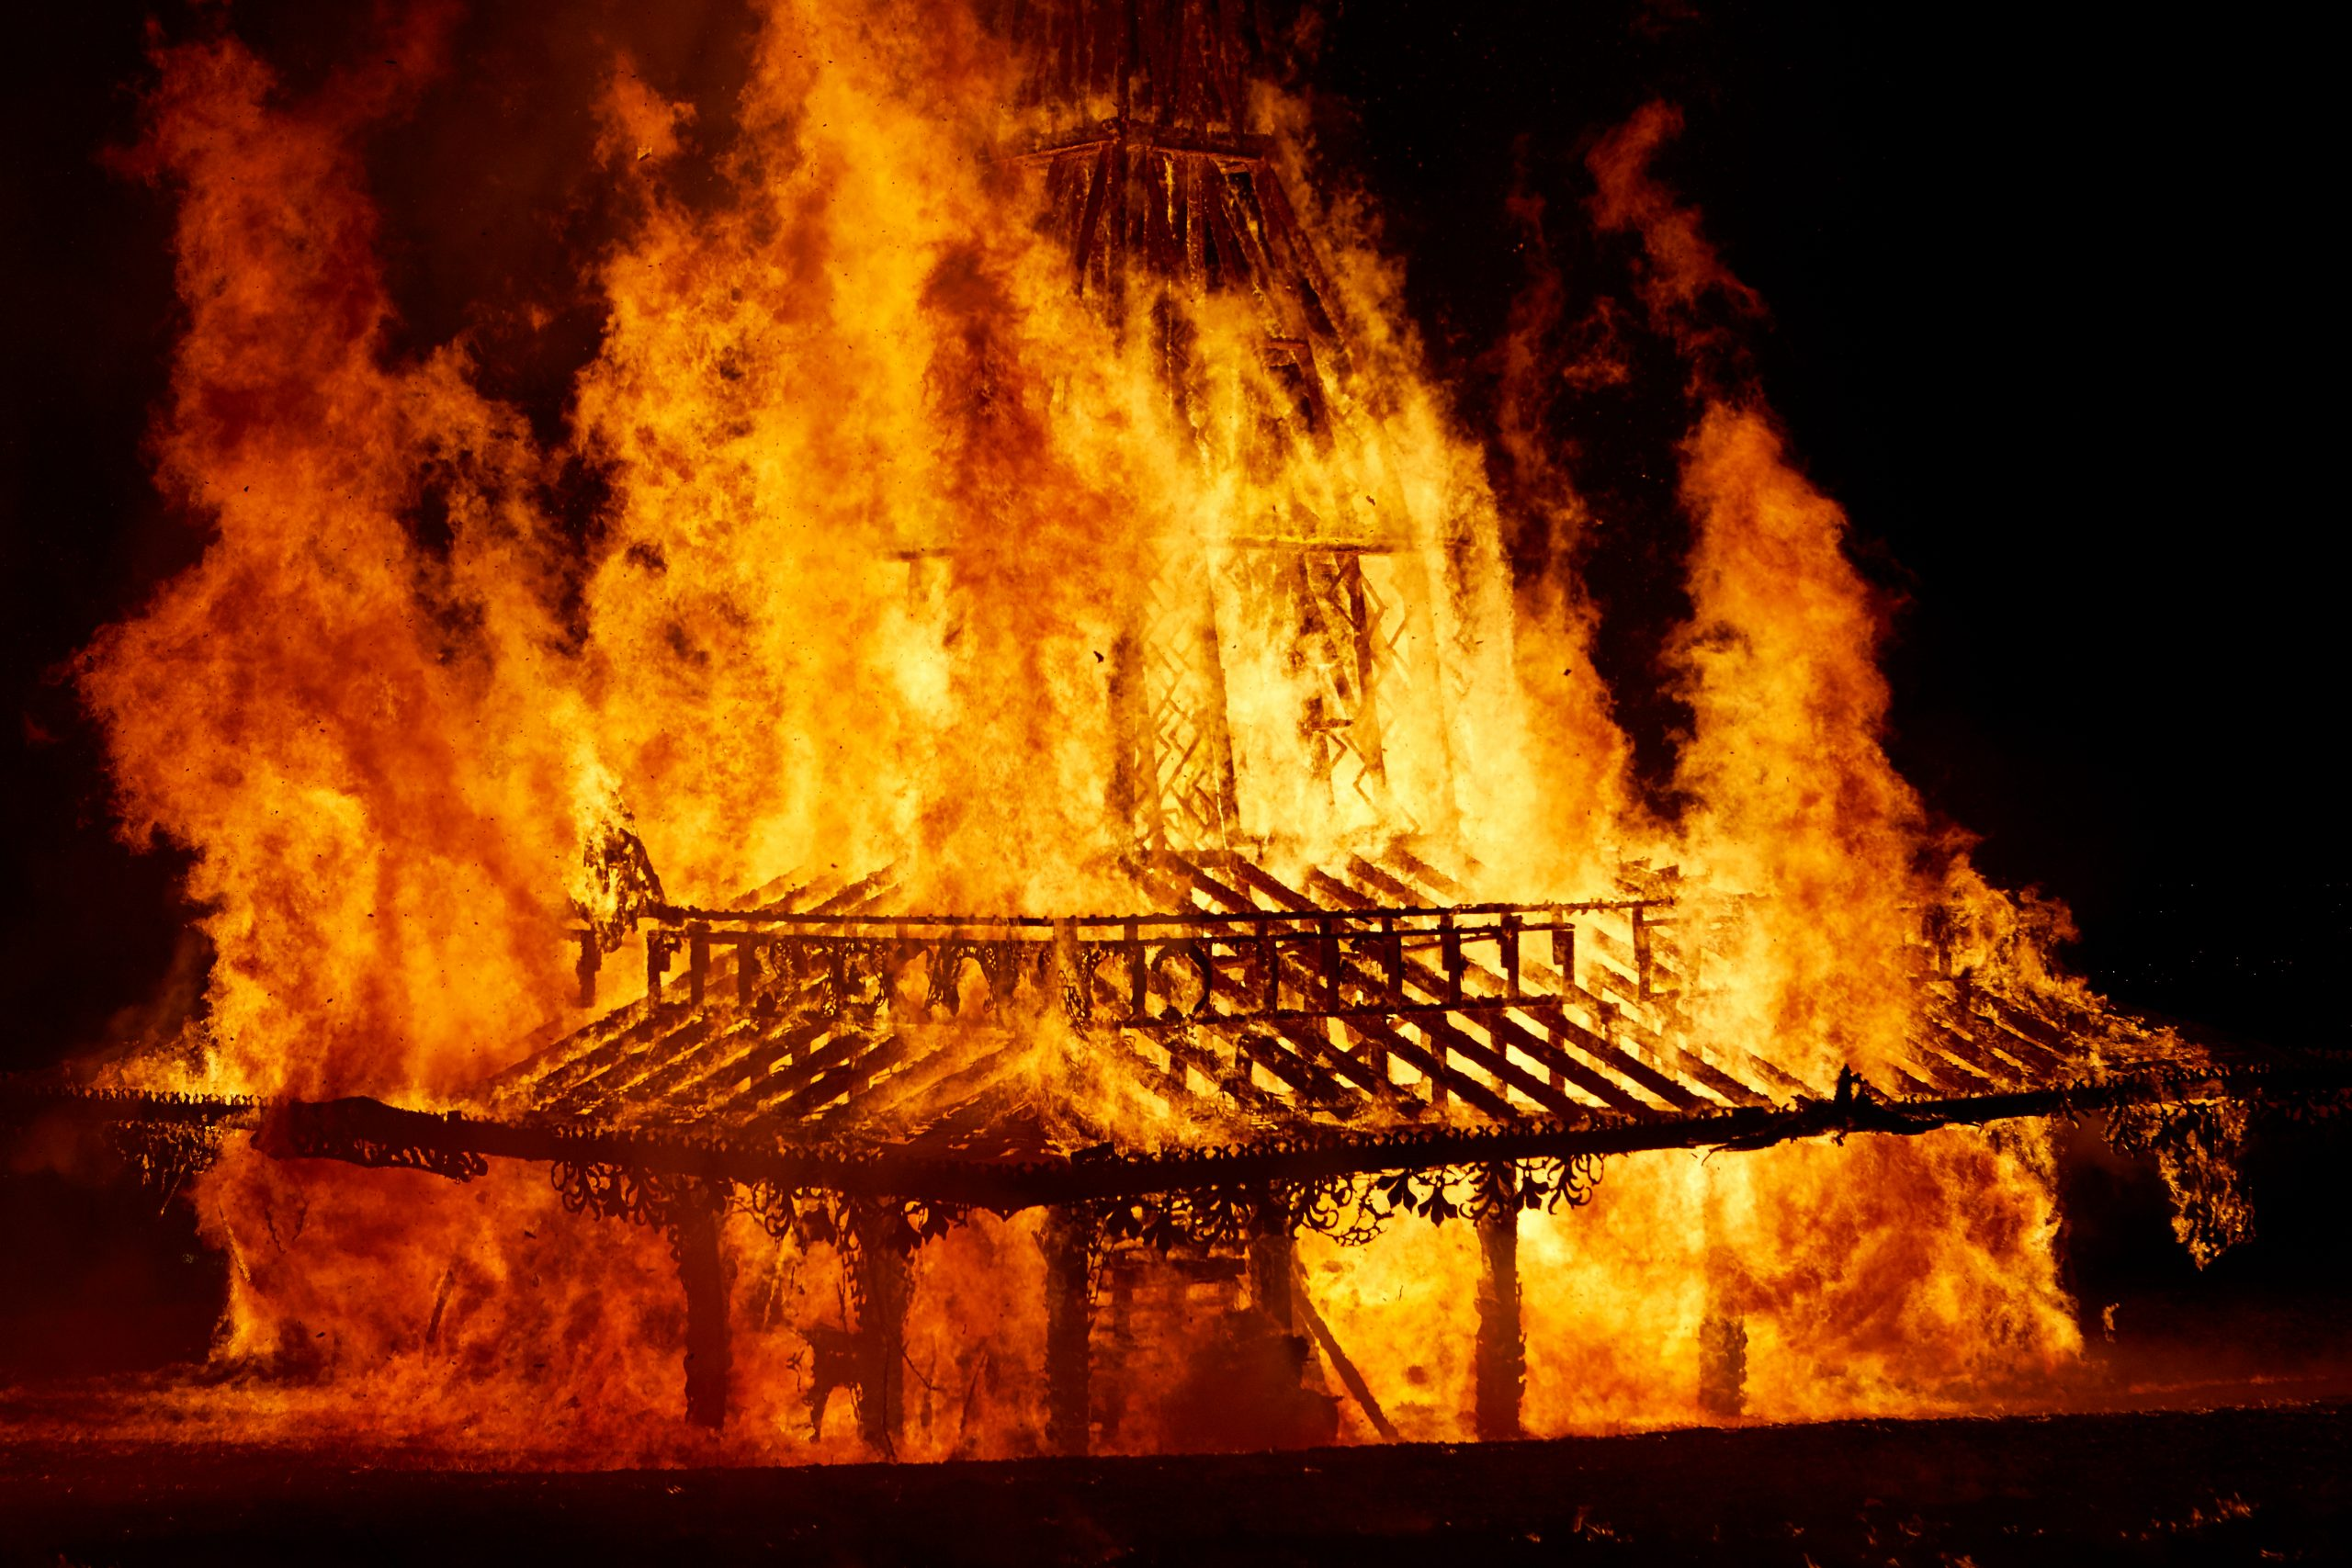 Close up of the Temple structure engulfed in flames